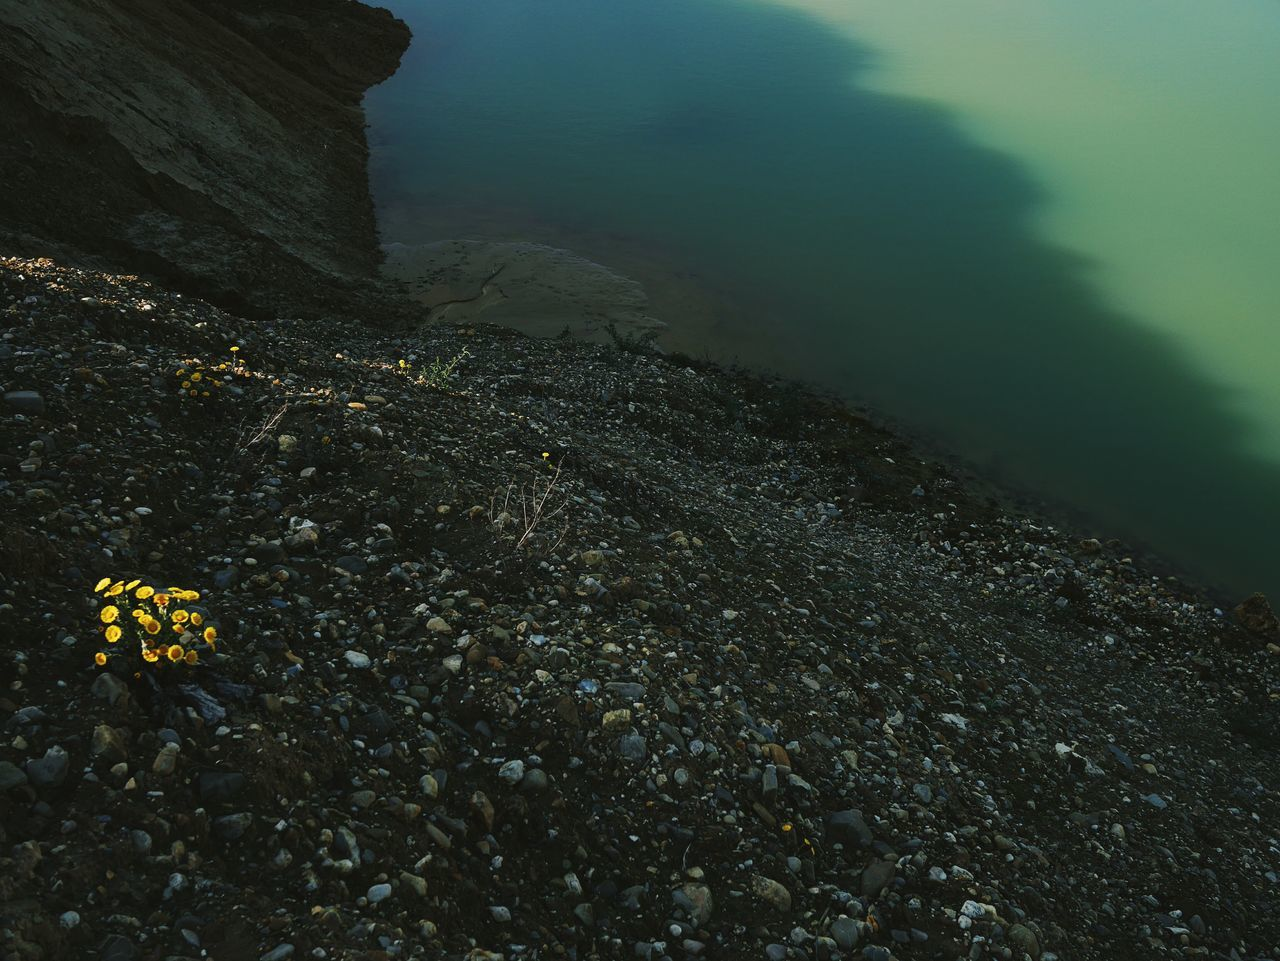 Outdoors Nature Beauty In Nature No People Day Beauty In Nature Freshness Tranquility Flower Yellow Flowers Light And Shadow Water Green Water